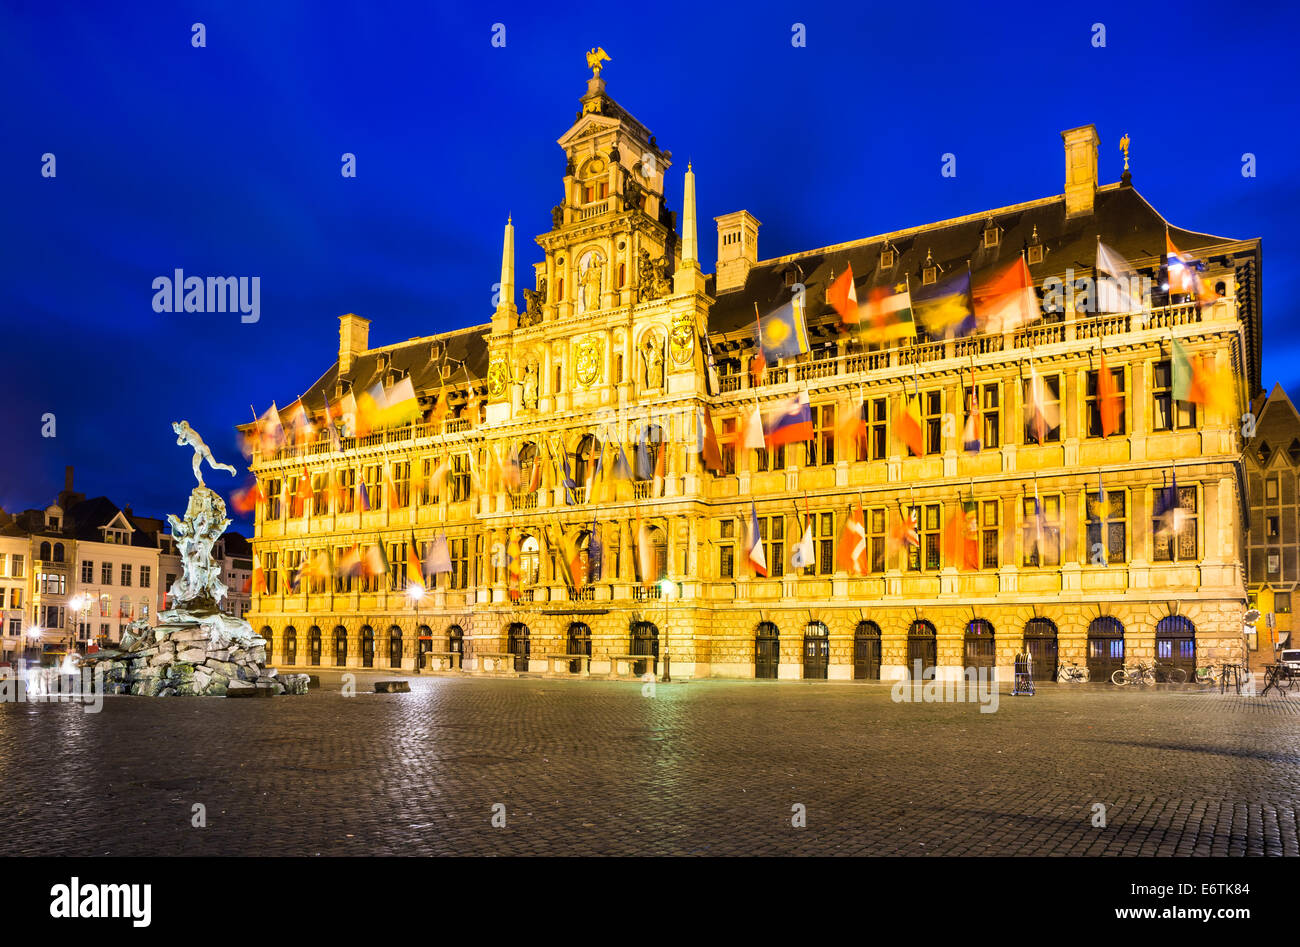 Grote Markt, Antwerp in Belgium spectacular central square and elegant 16th-century Stadhuis (town hall) dressed Stock Photo